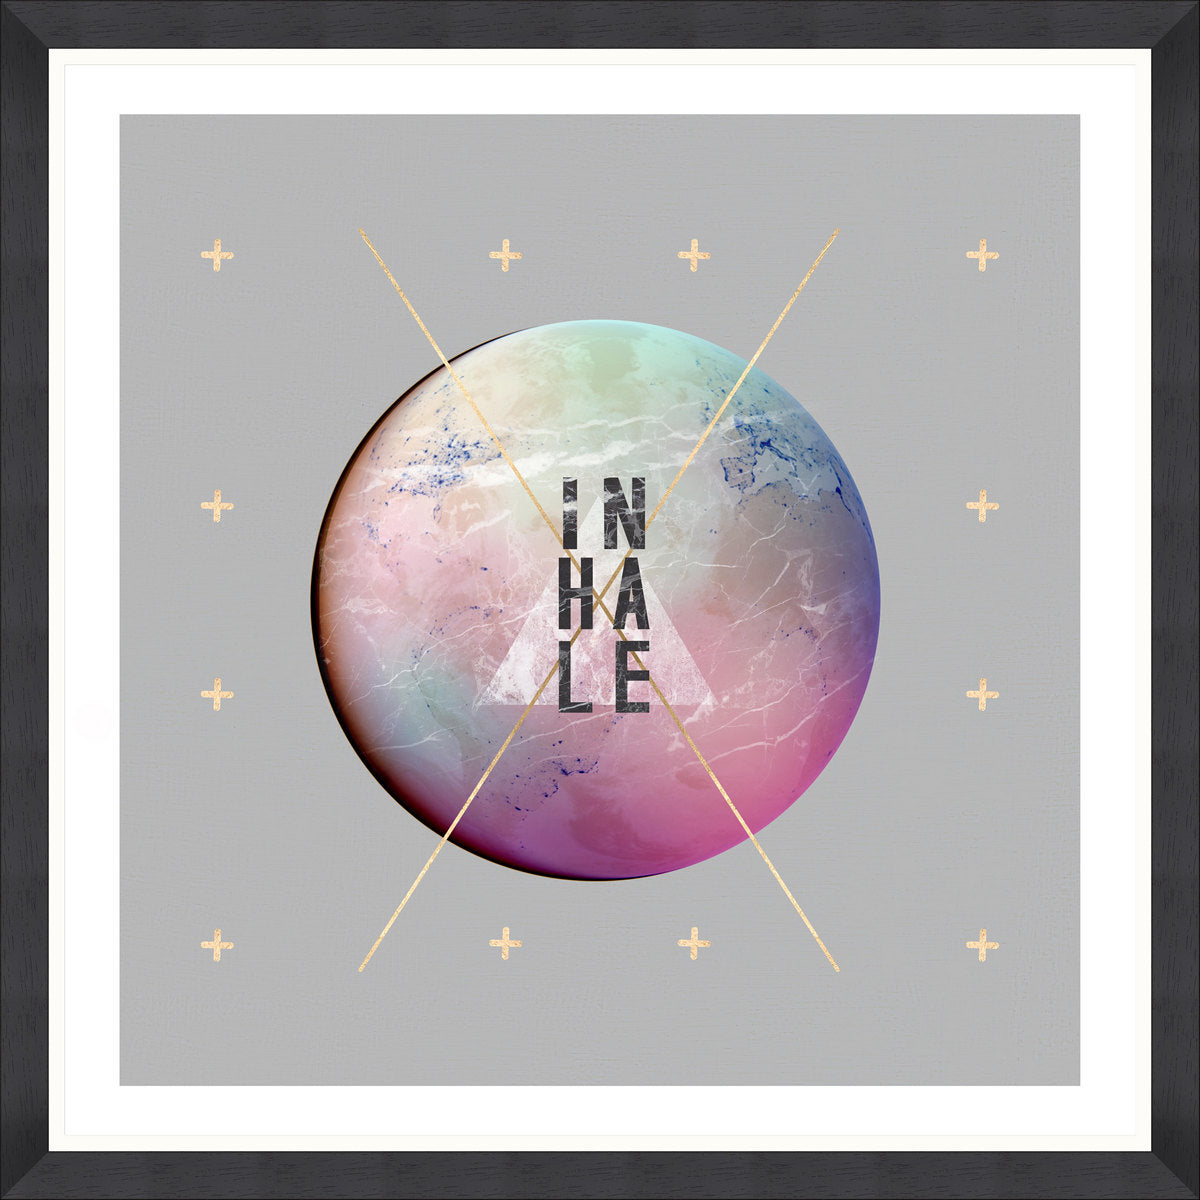 Inhale Art Print by Pad Home on OOSTOR.com